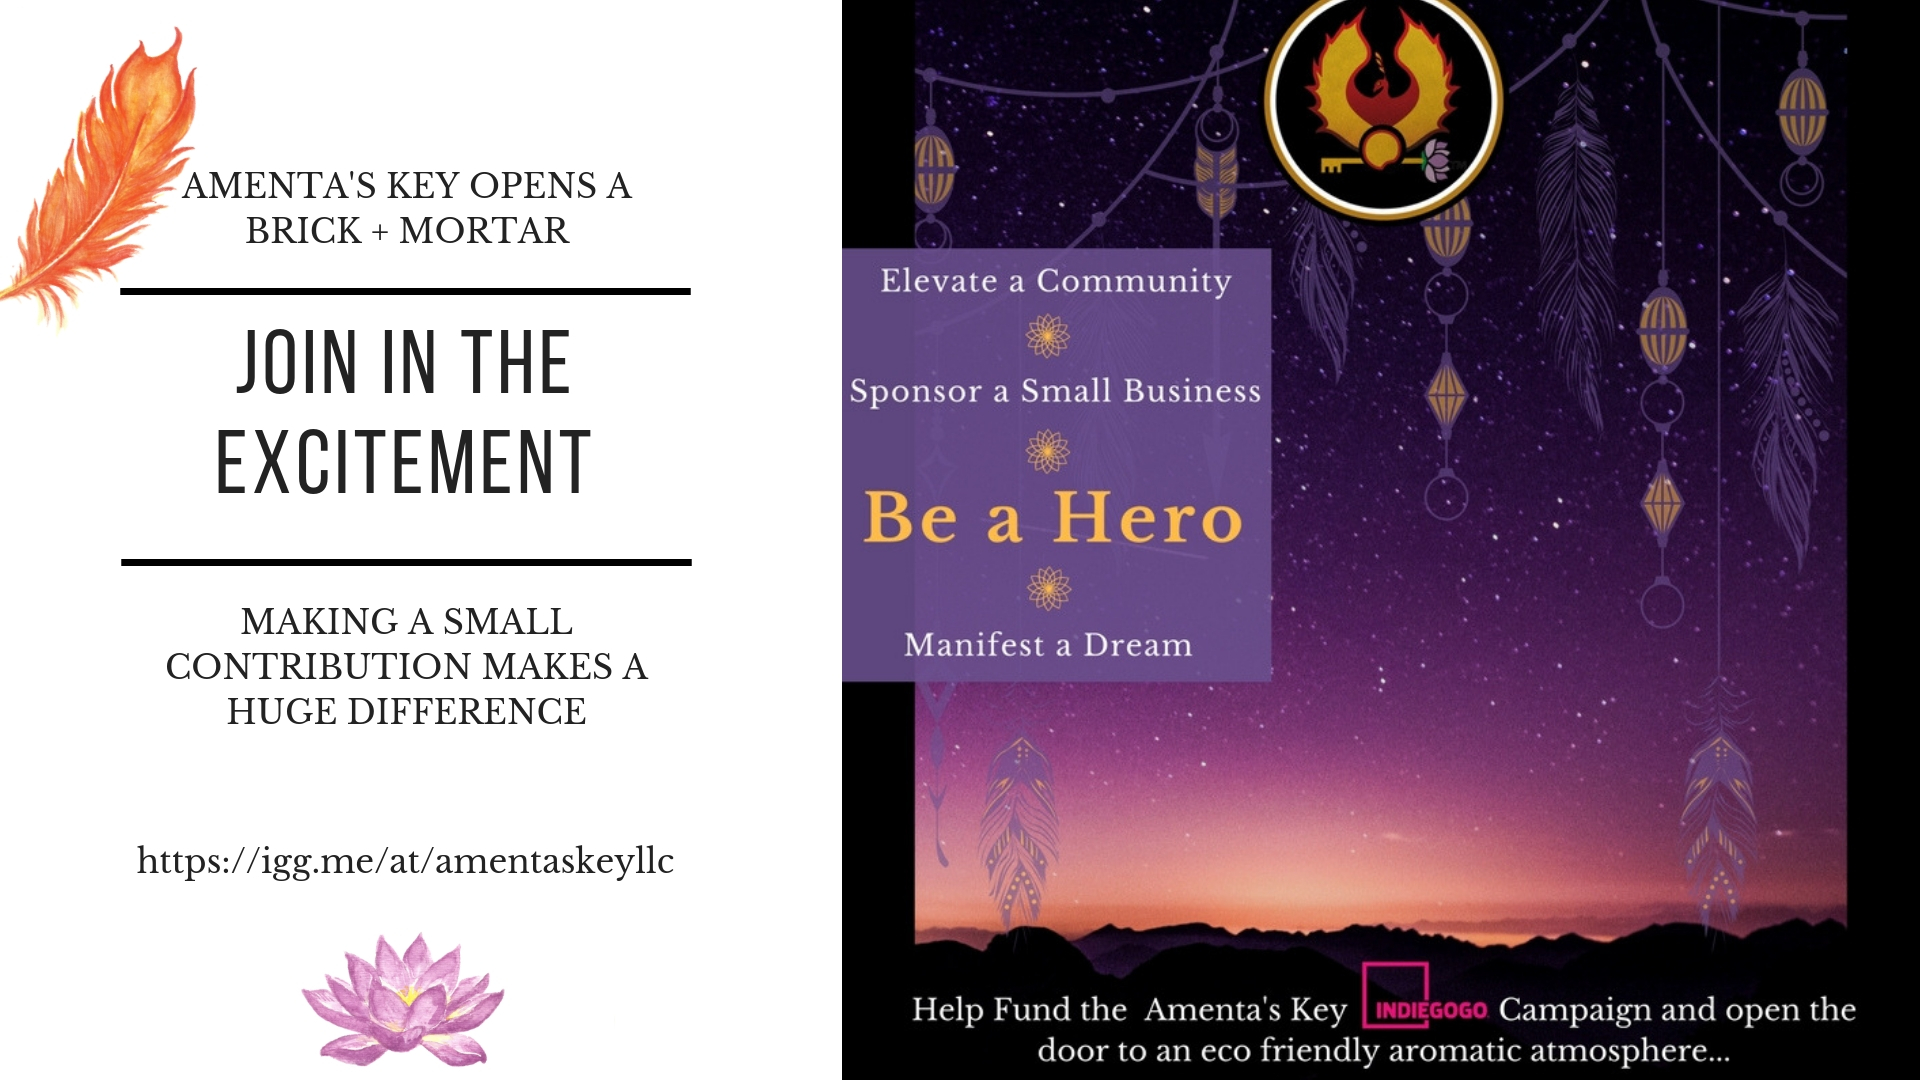 Be a Hero - Sponsor our Small Business